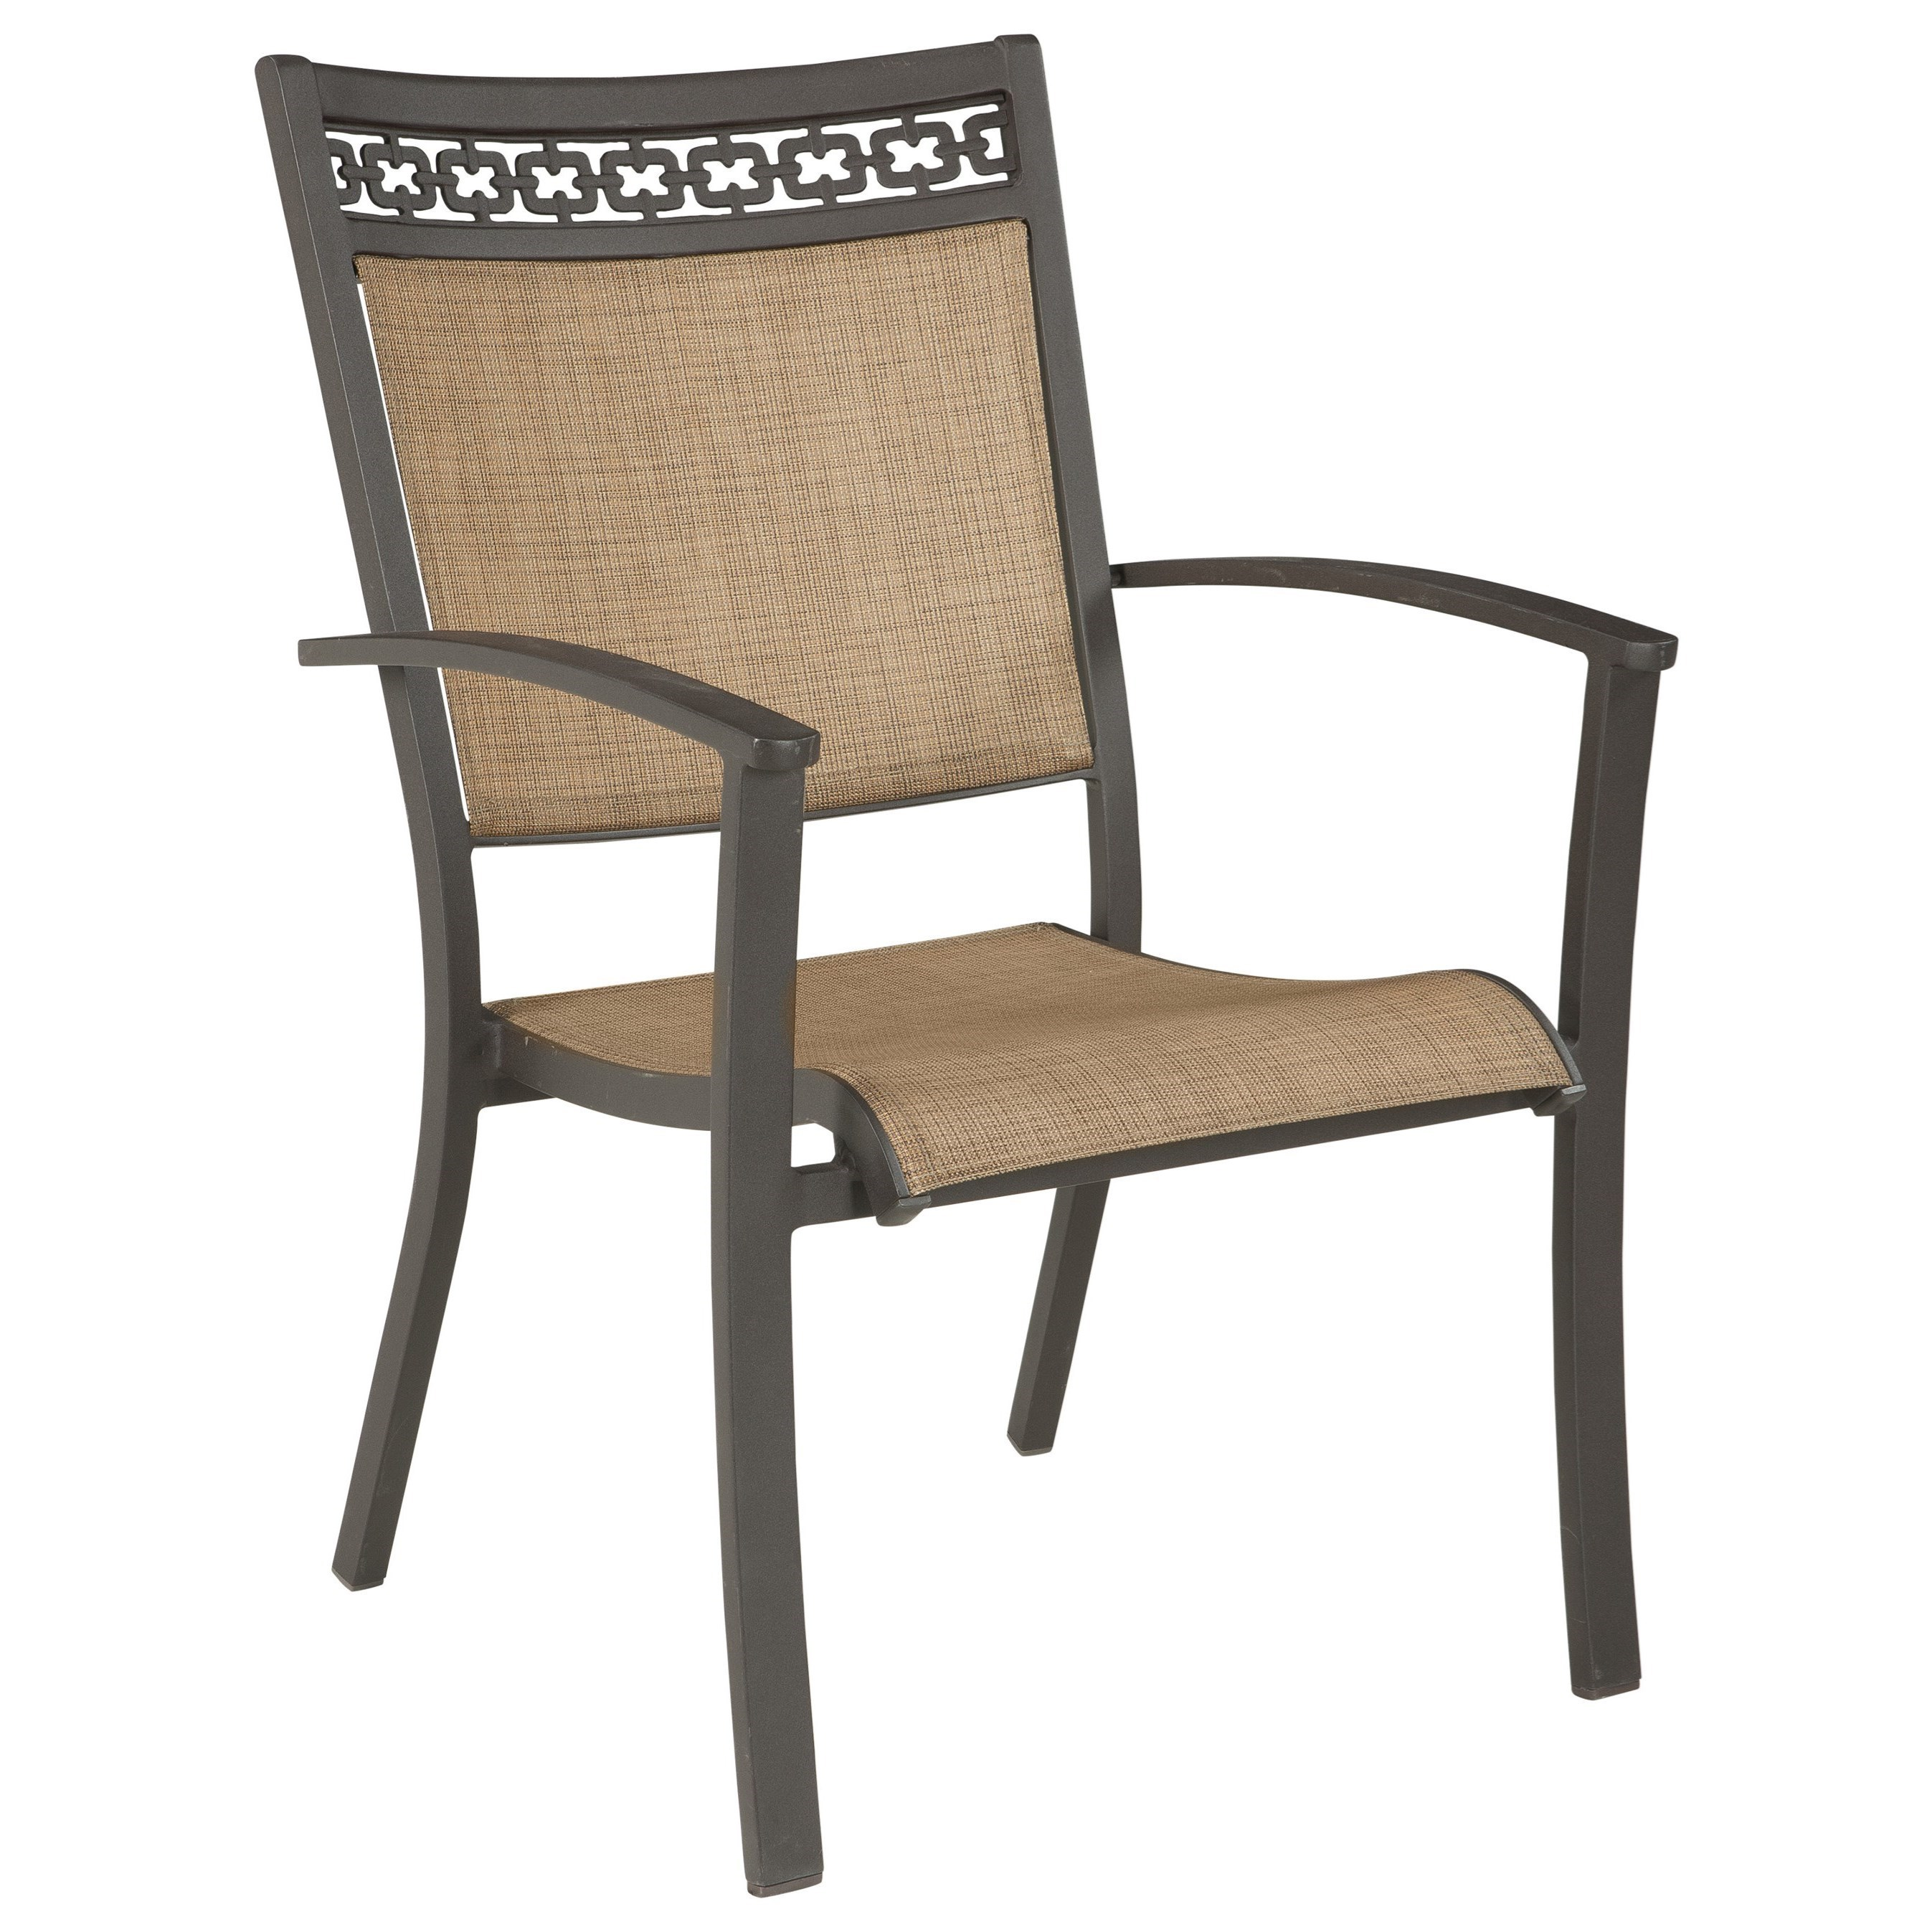 Signature Design By Ashley Carmadelia Set Of 4 Outdoor Sling Chairs   John  V Schultz Furniture   Outdoor Dining Arm Chairs